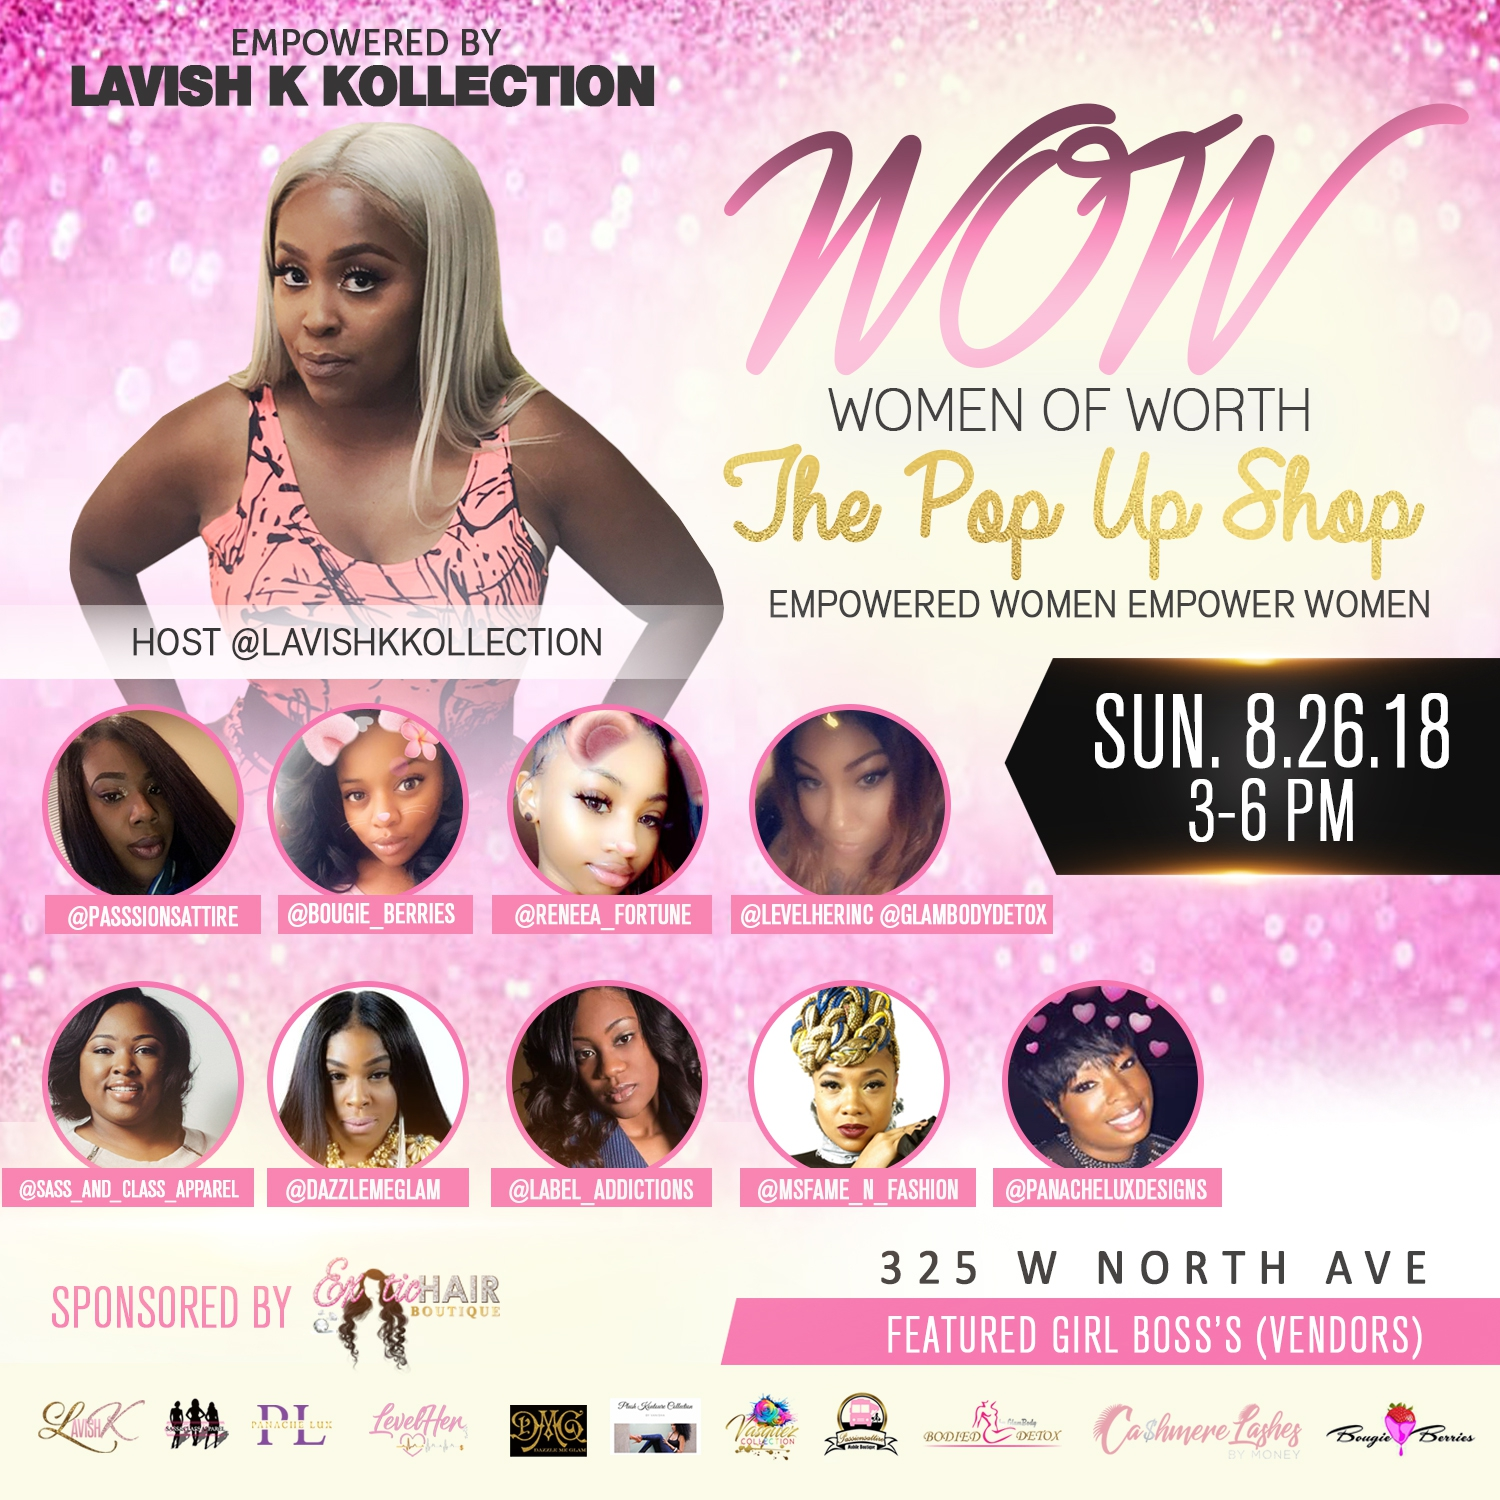 Networking Pop Up Shop Flyer